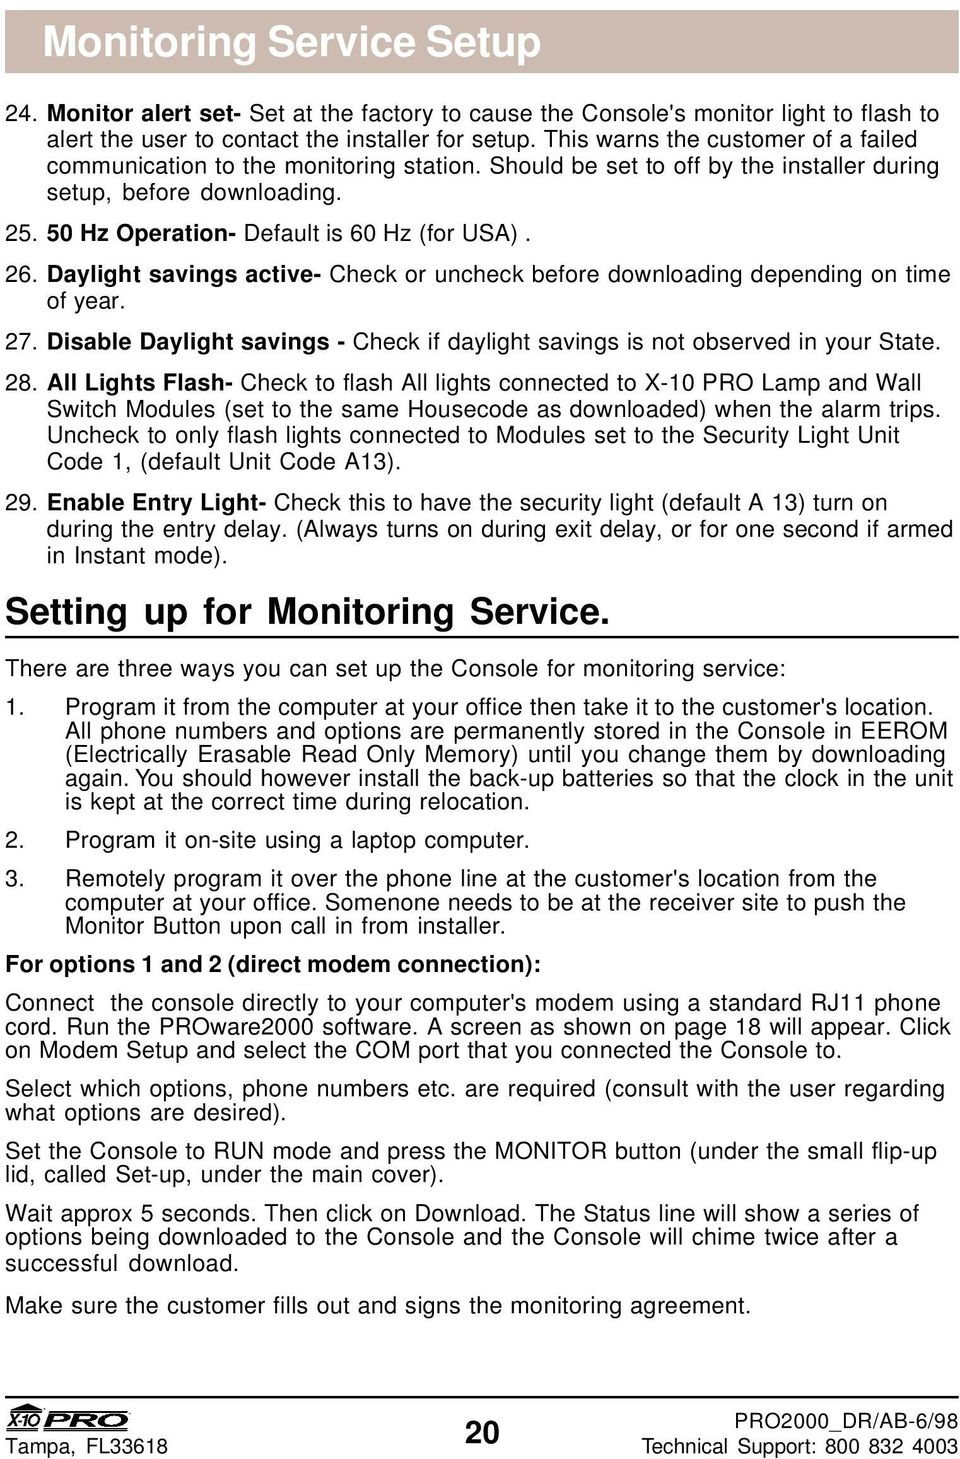 Monitored Security System Installers Guide Pdf X10 Wall Switch Wiring Diagram 26 Daylight Savings Active Check Or Uncheck Before Downloading Depending On Time Of Year